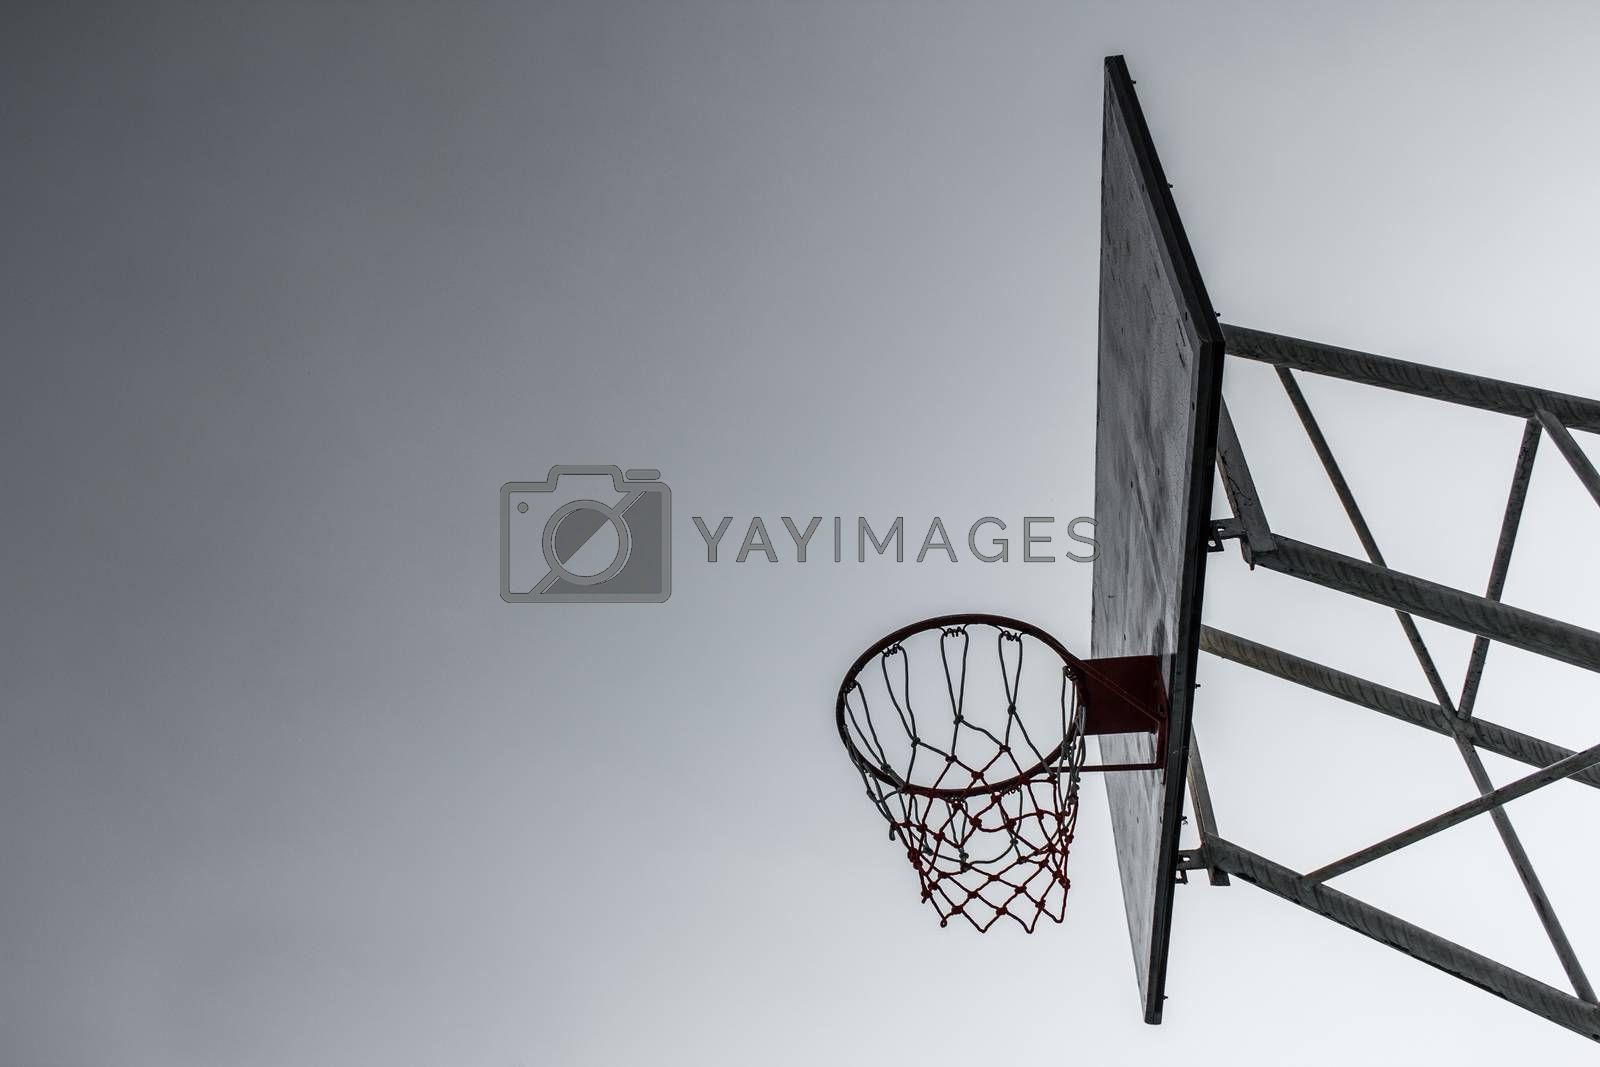 Royalty free image of Basketball Hoop by letoakin